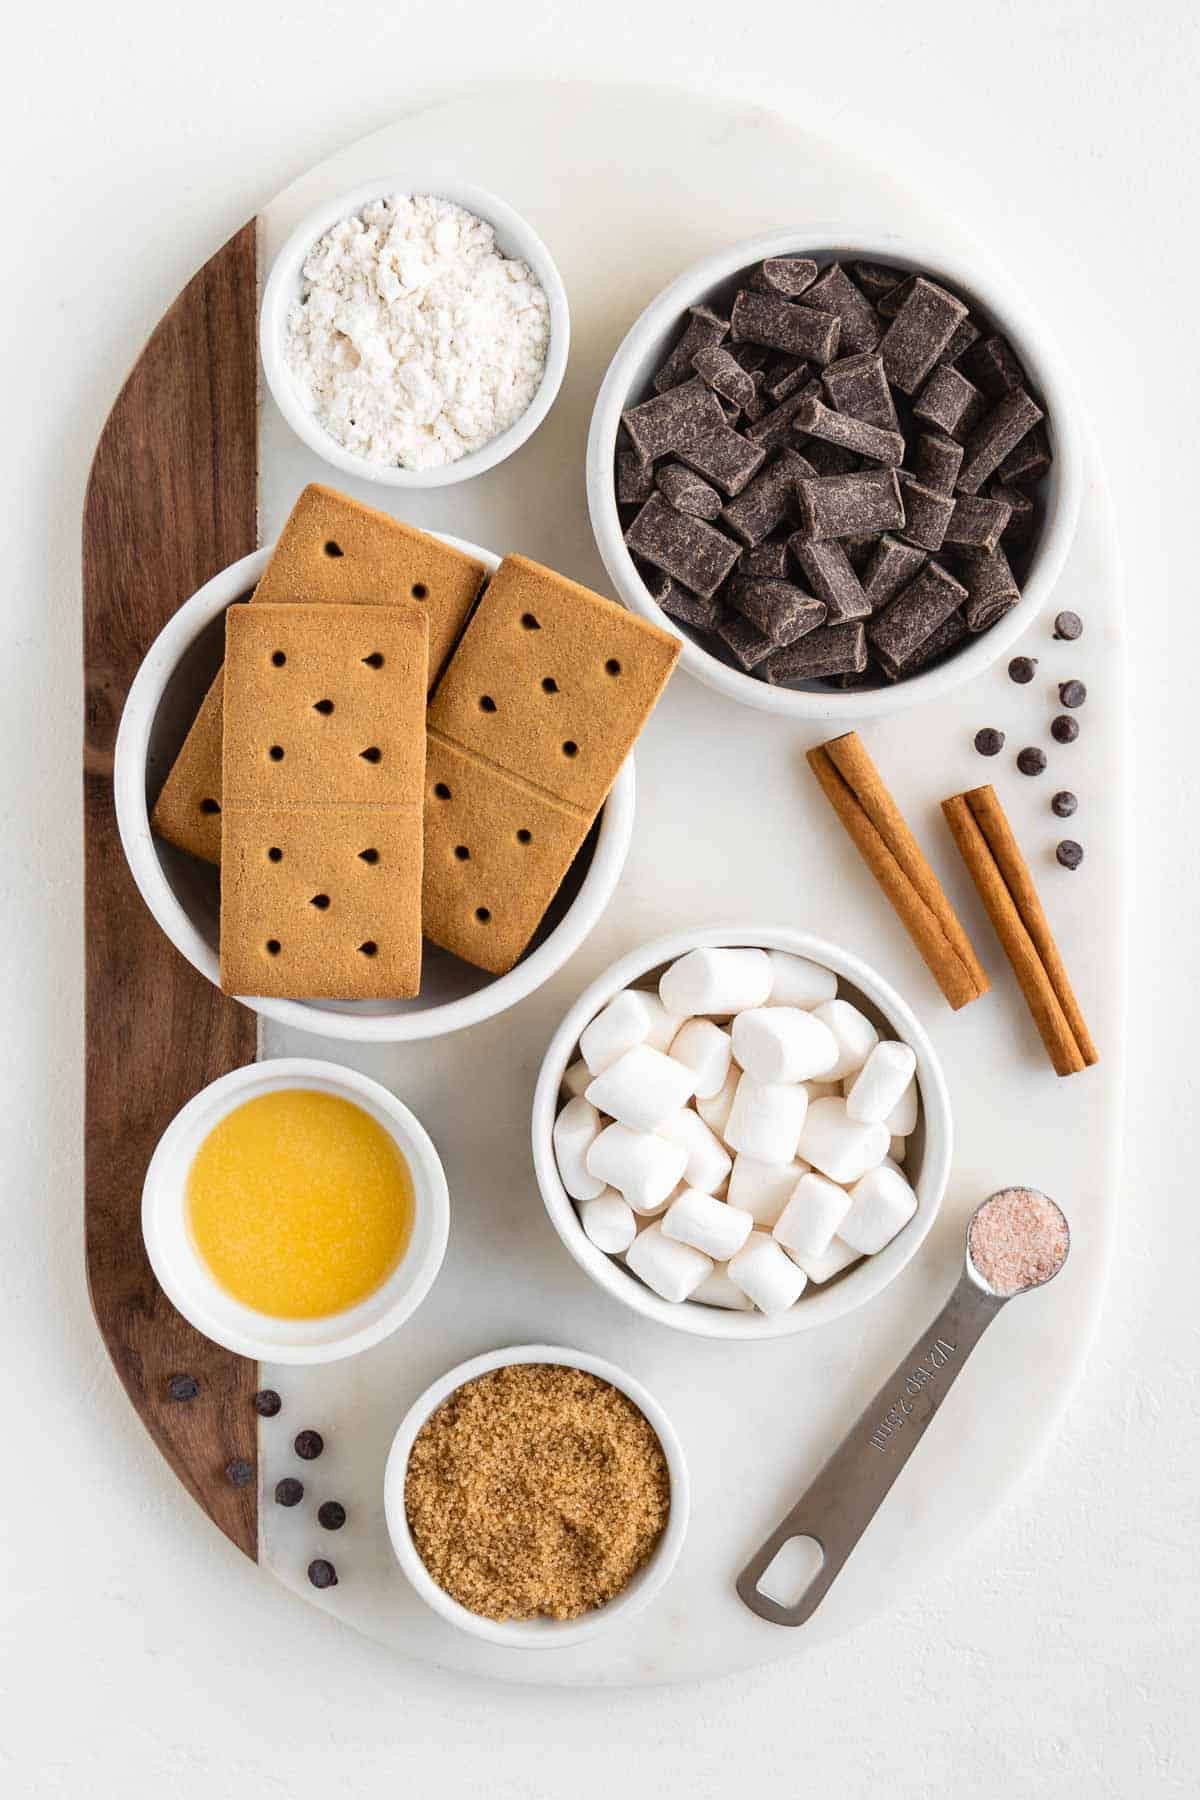 a marble cutting board topped with bowls of graham crackers, chocolate chunks, mini marshmallows, brown sugar, vegan butter, cinnamon sticks, flour, and salt